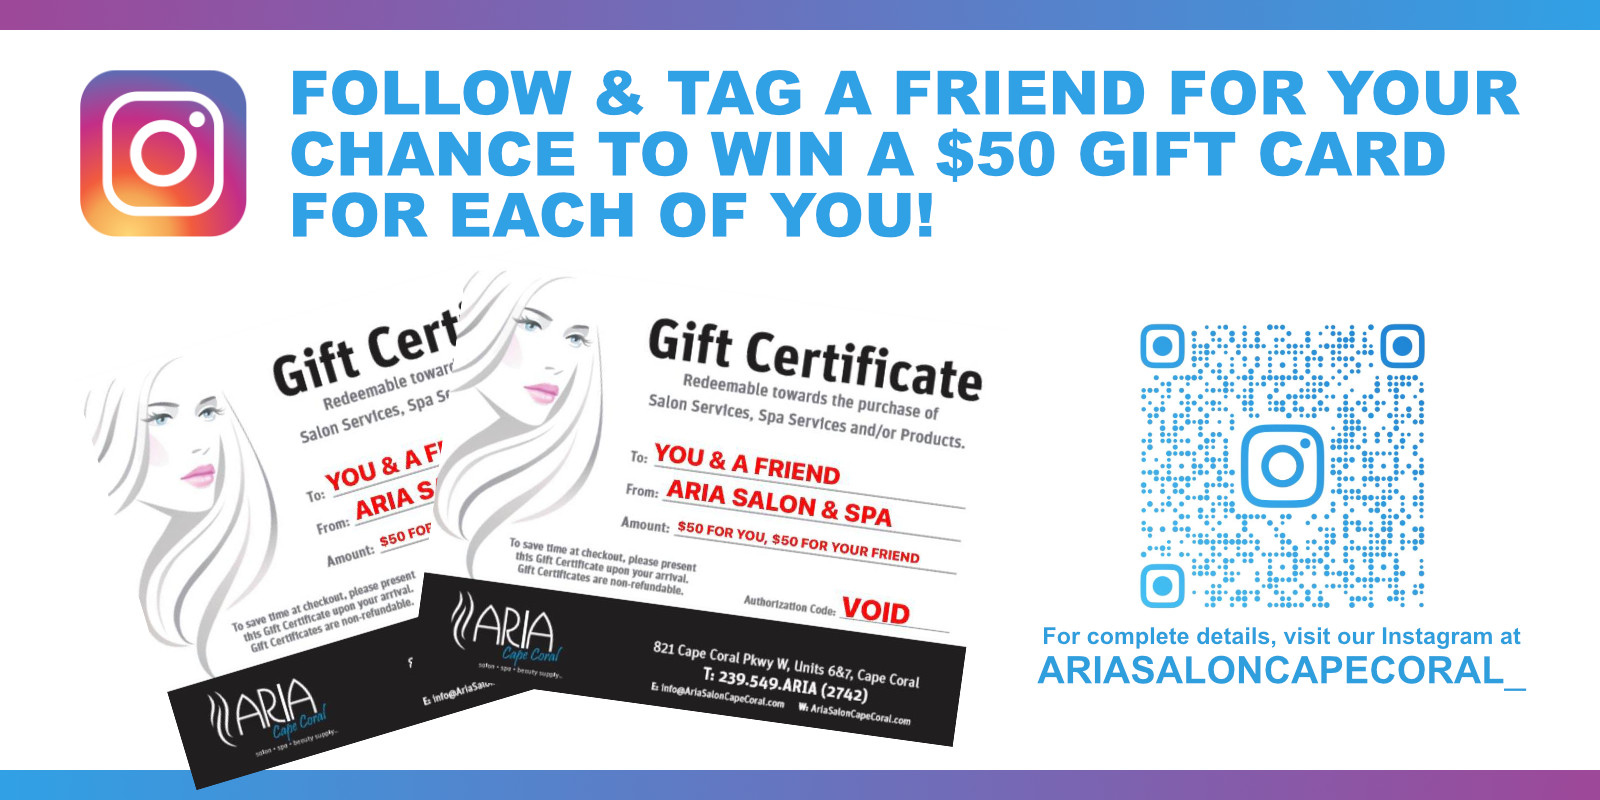 Gift Certificate Promo July 2021